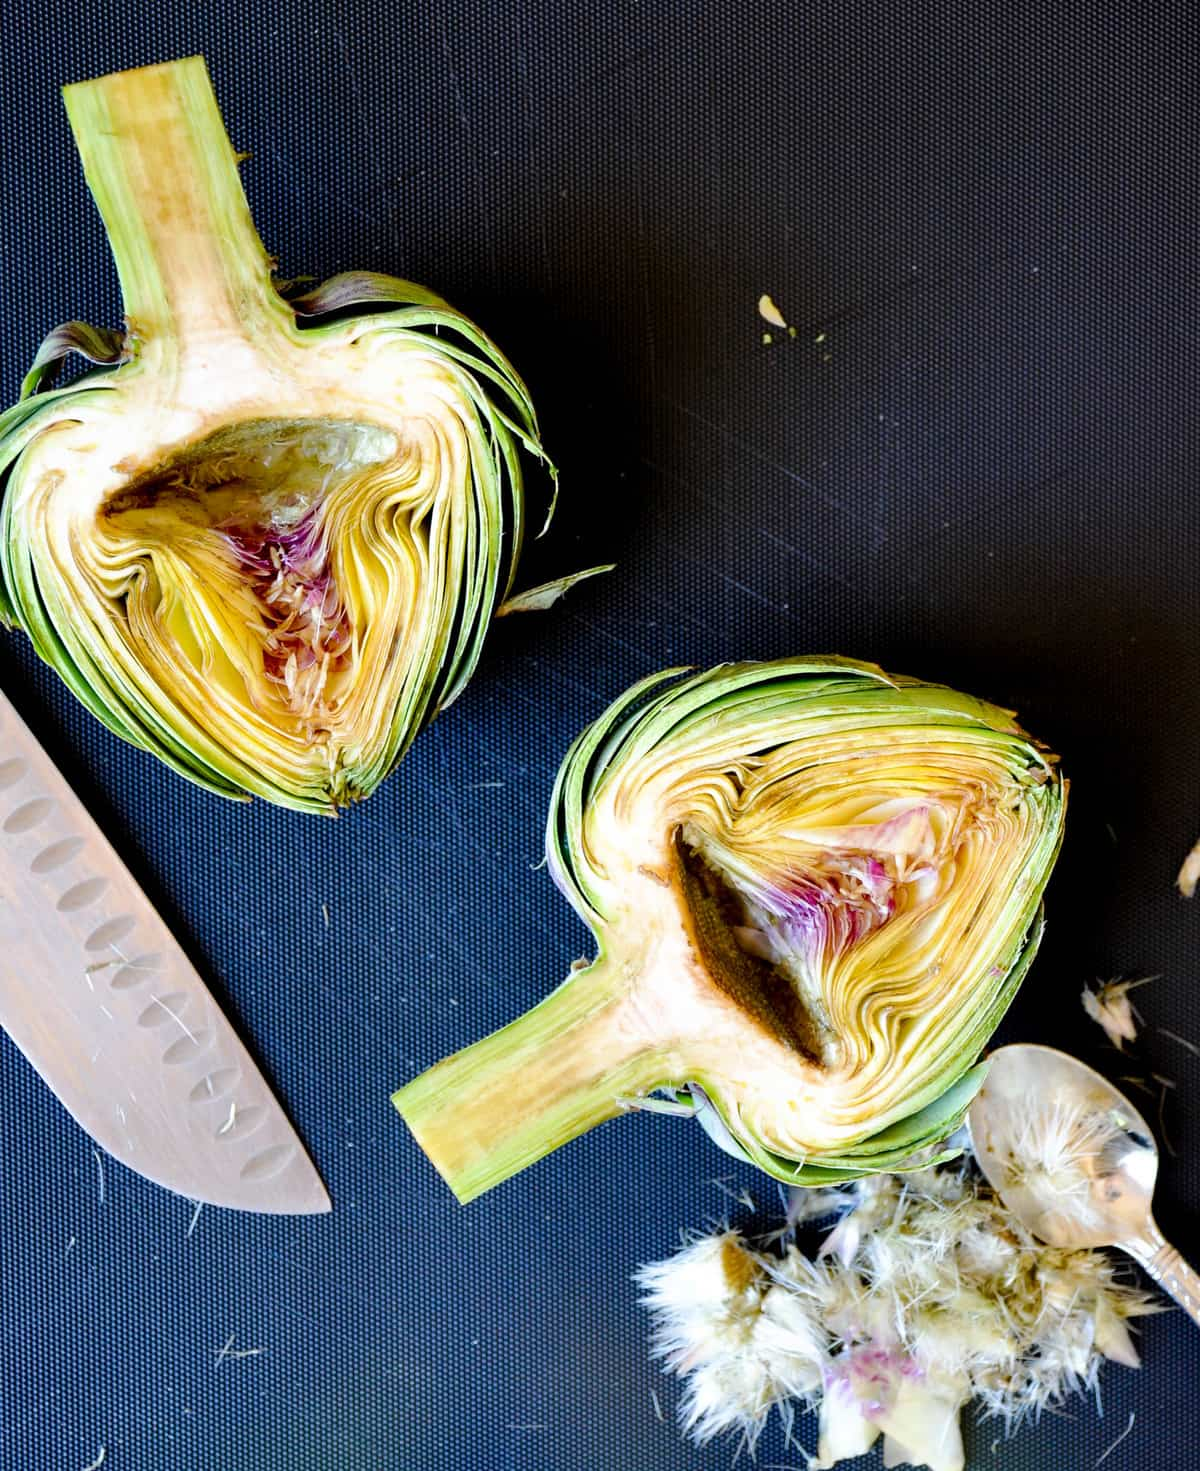 Remove the hairy part of the artichoke